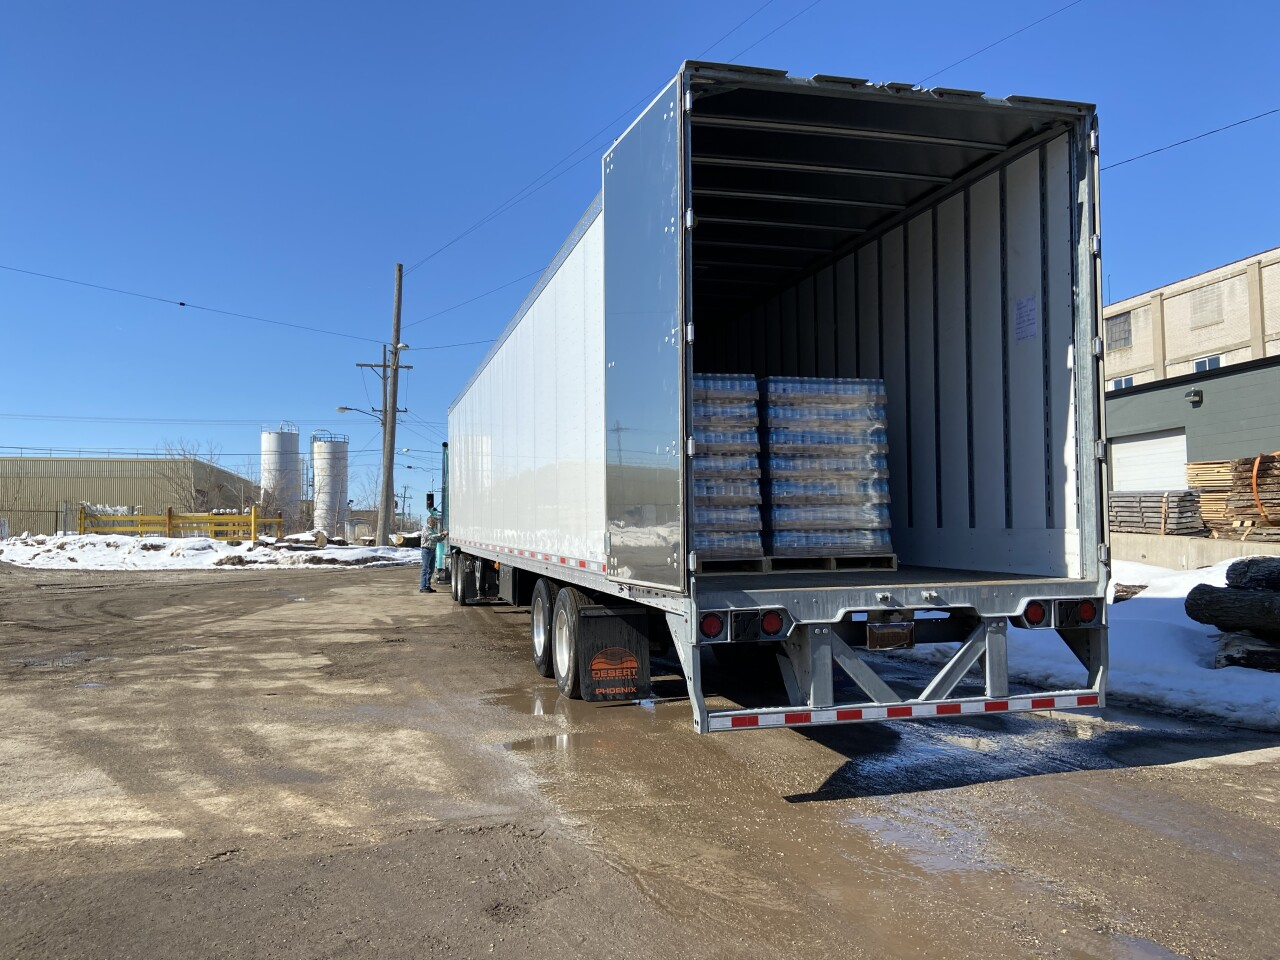 Truck filled with canned water